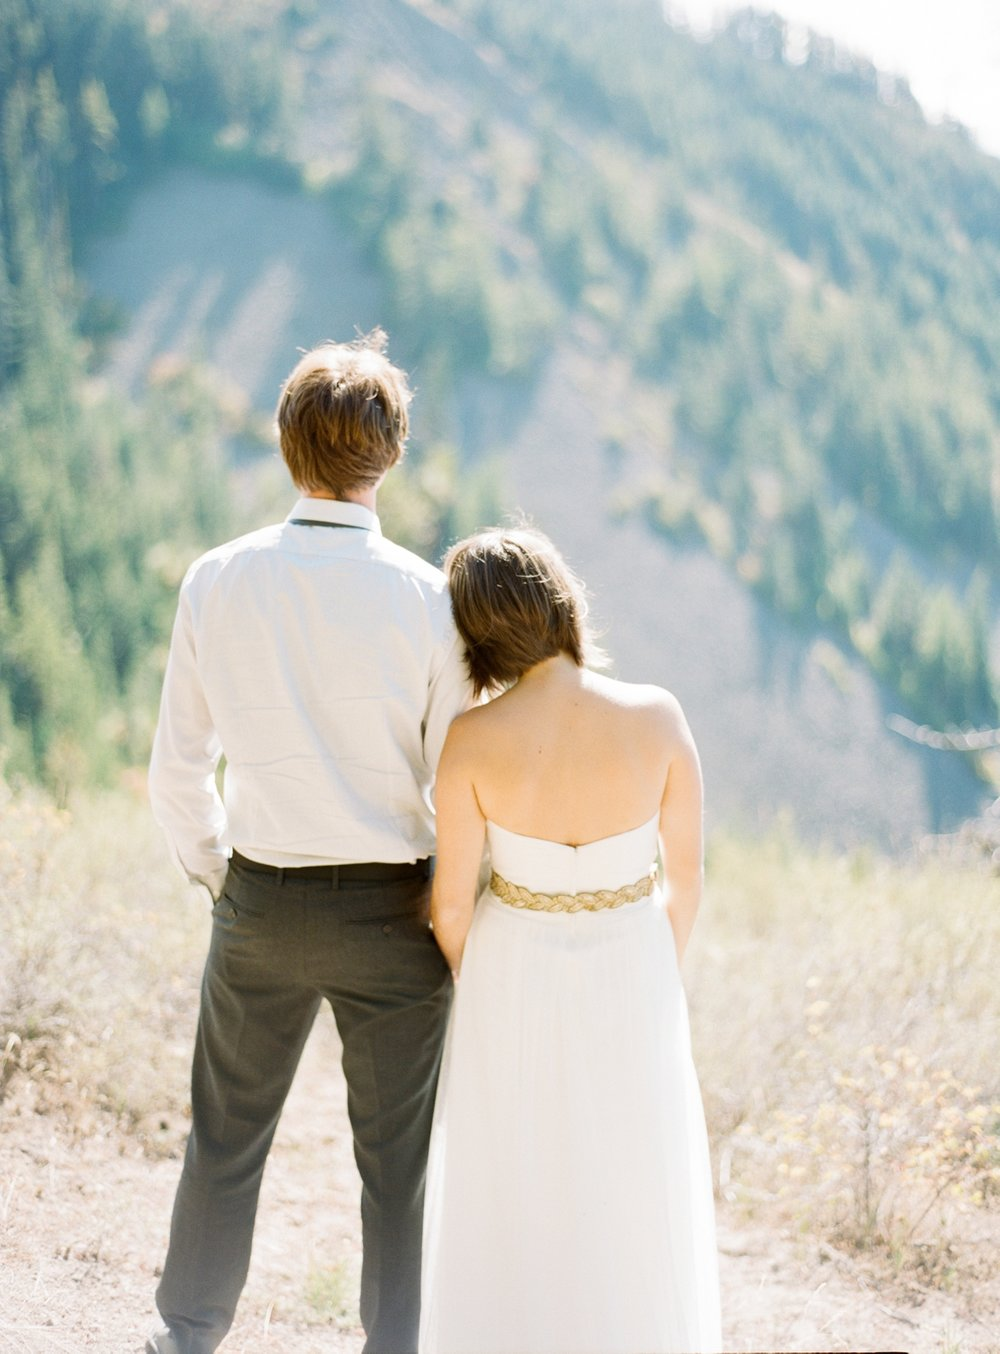 mt hood wedding photographer mt hood oregon wedding photographer shannon griffin_0046.jpg